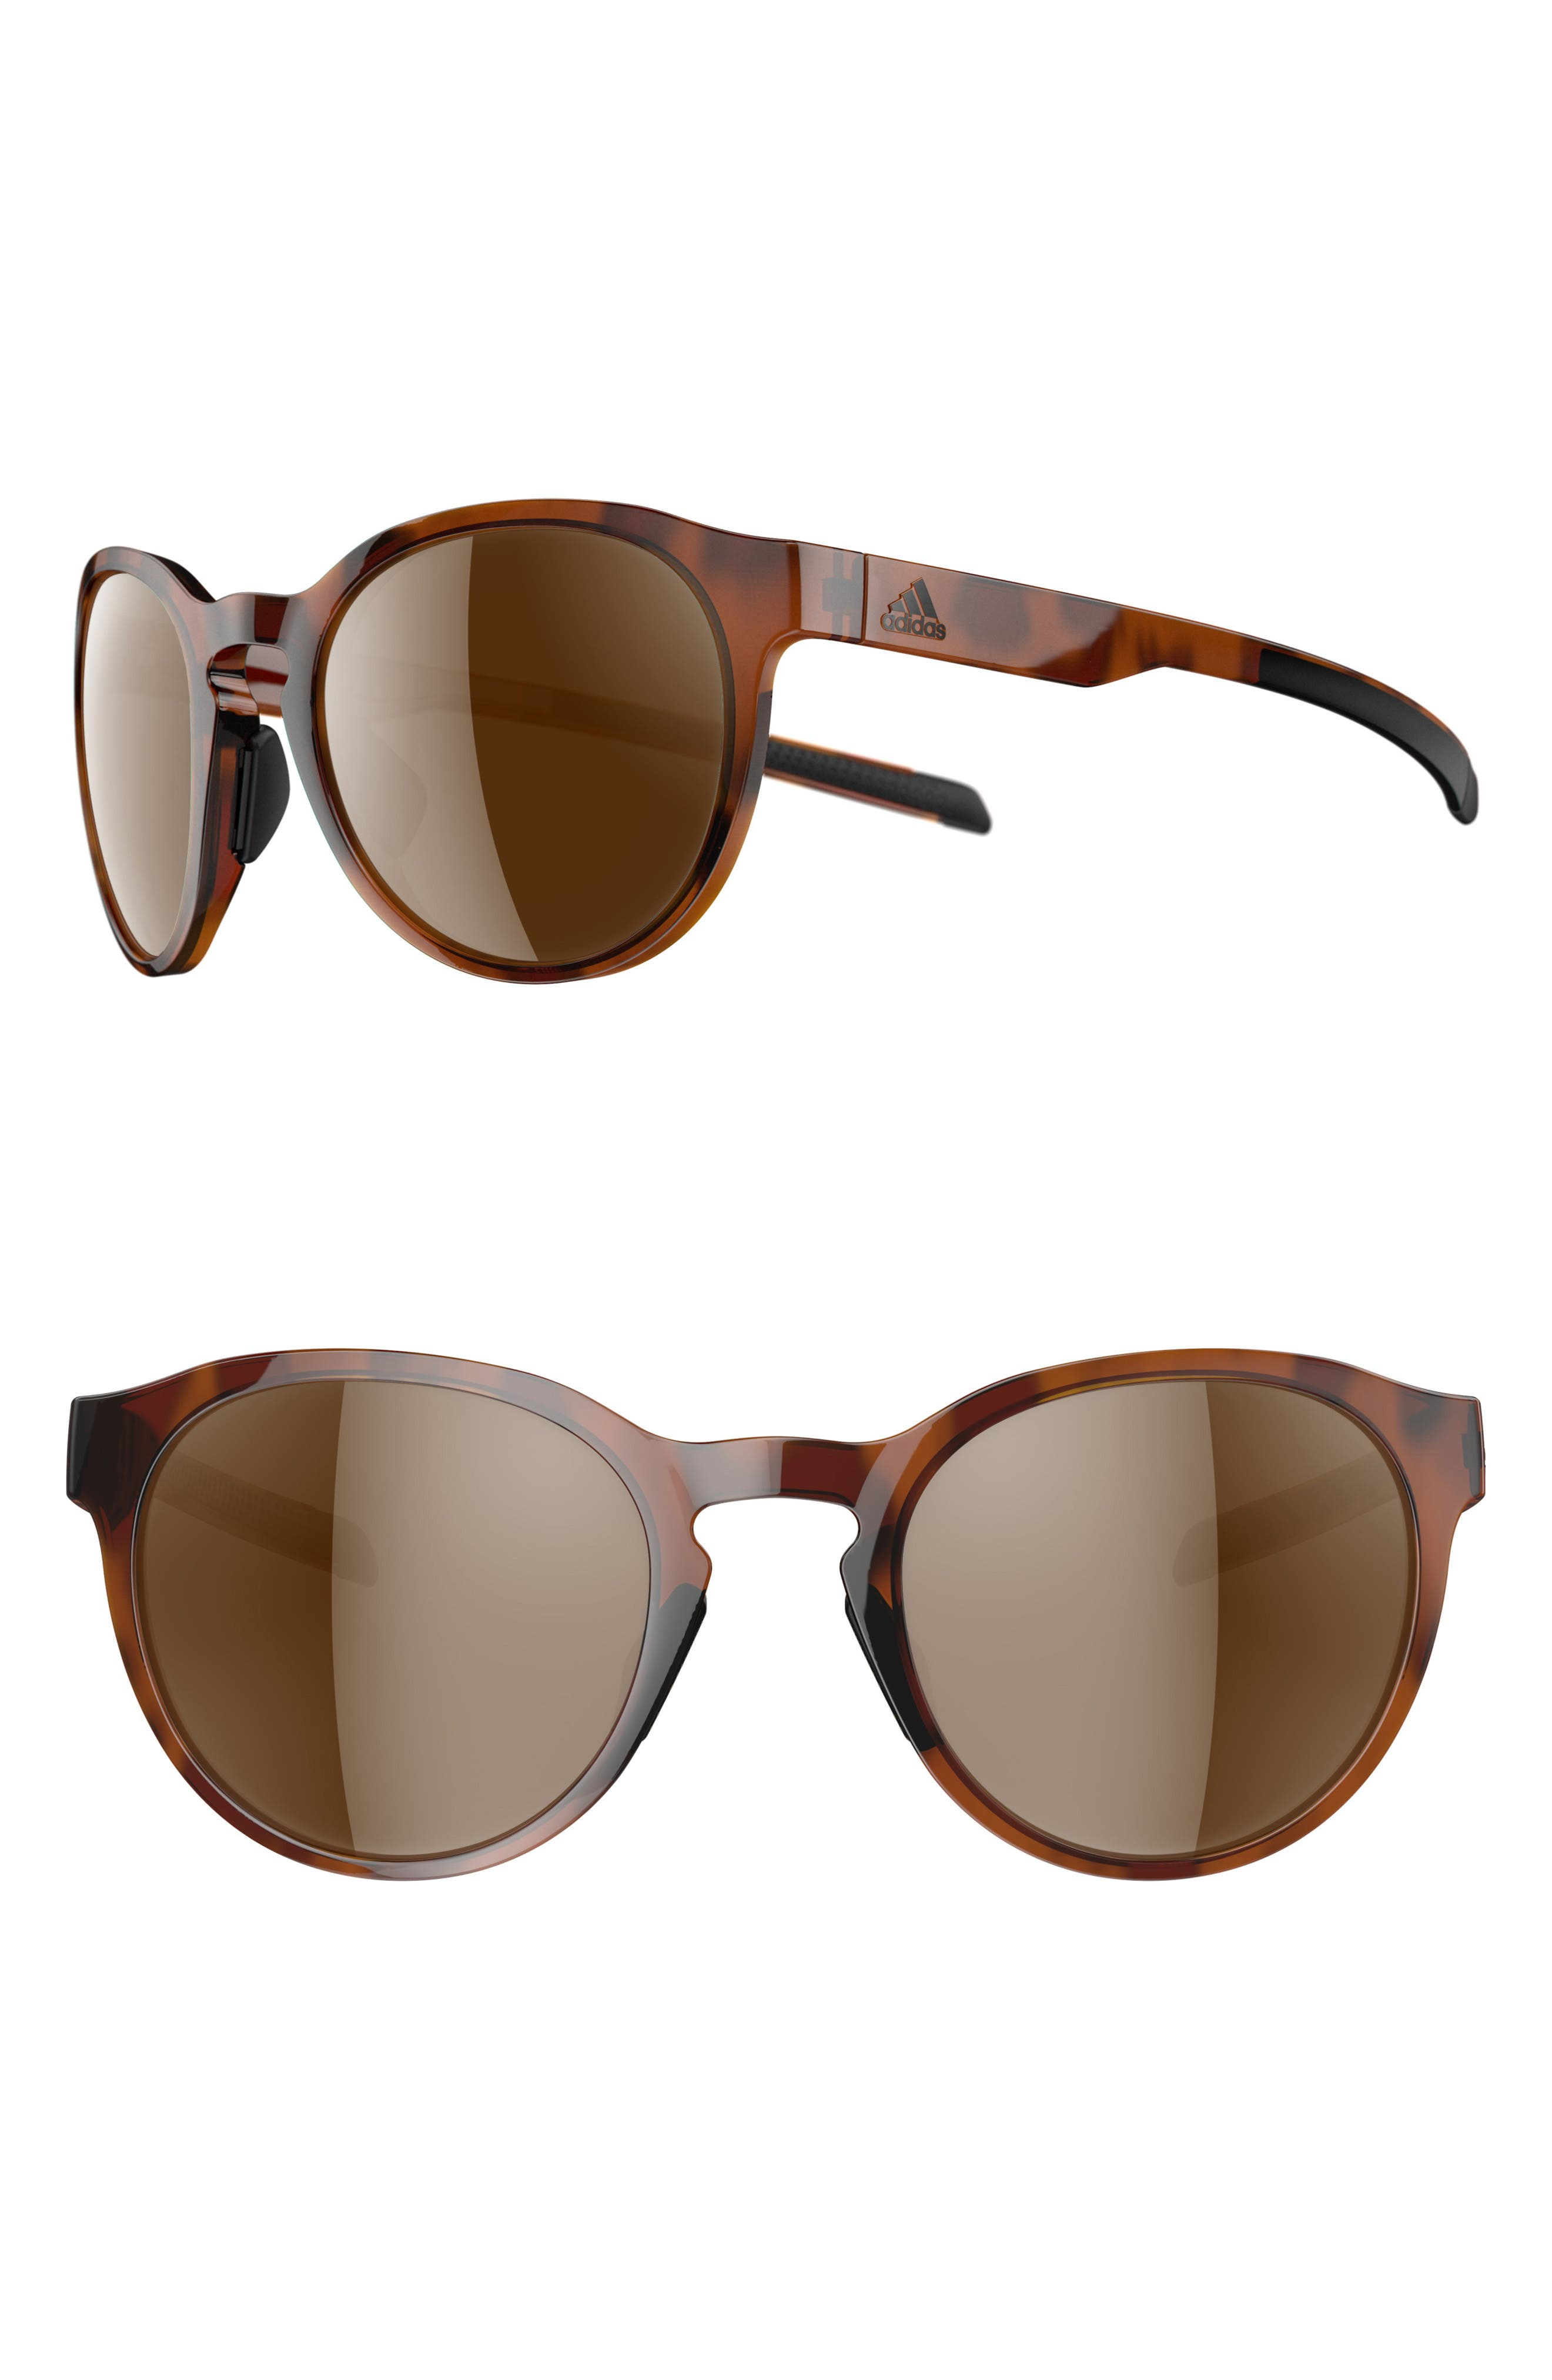 Proshift 52mm Round Sport Sunglasses,                             Main thumbnail 1, color,                             BROWN HAVANA/ BROWN